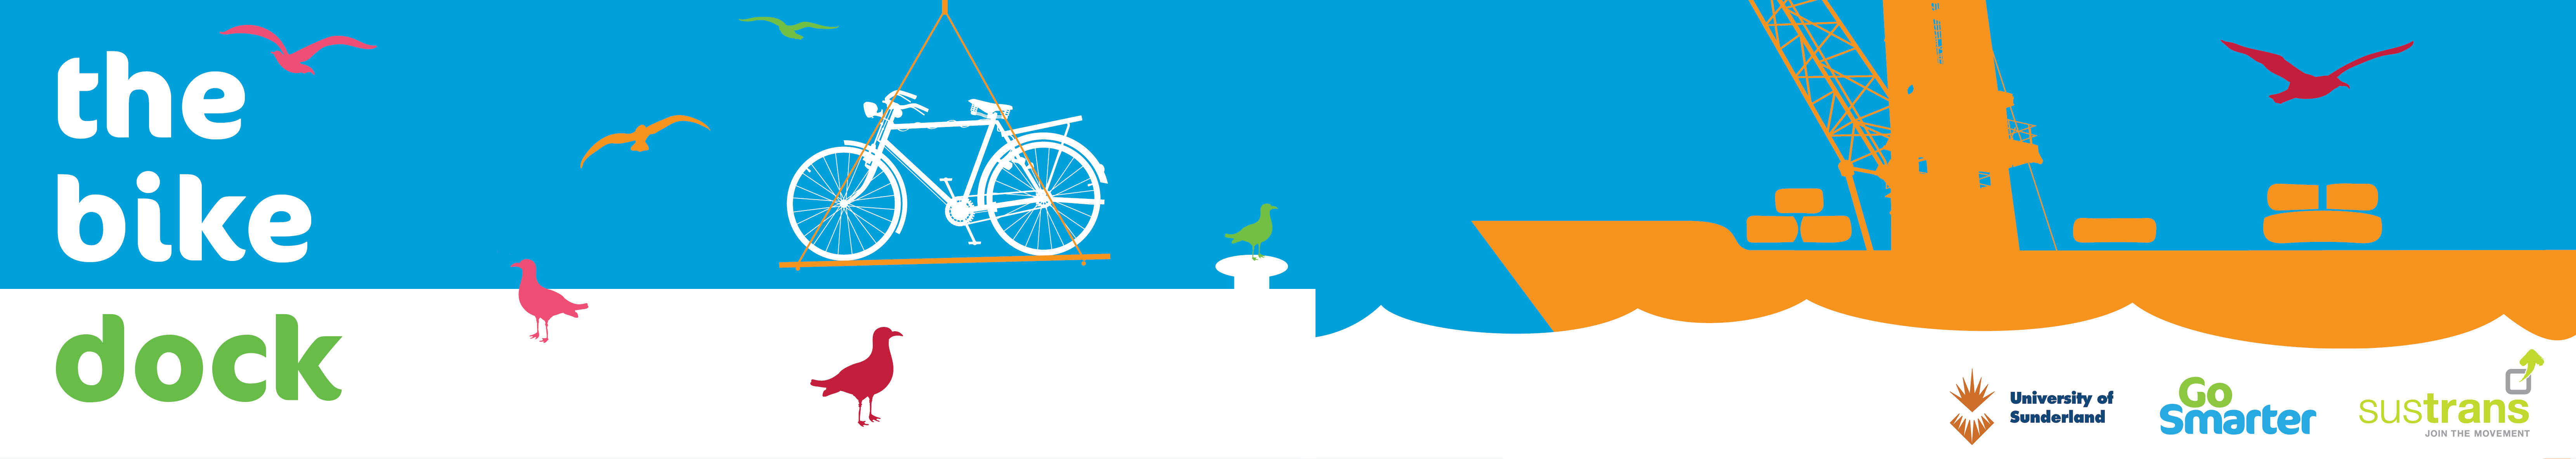 The Bike Dock Banner